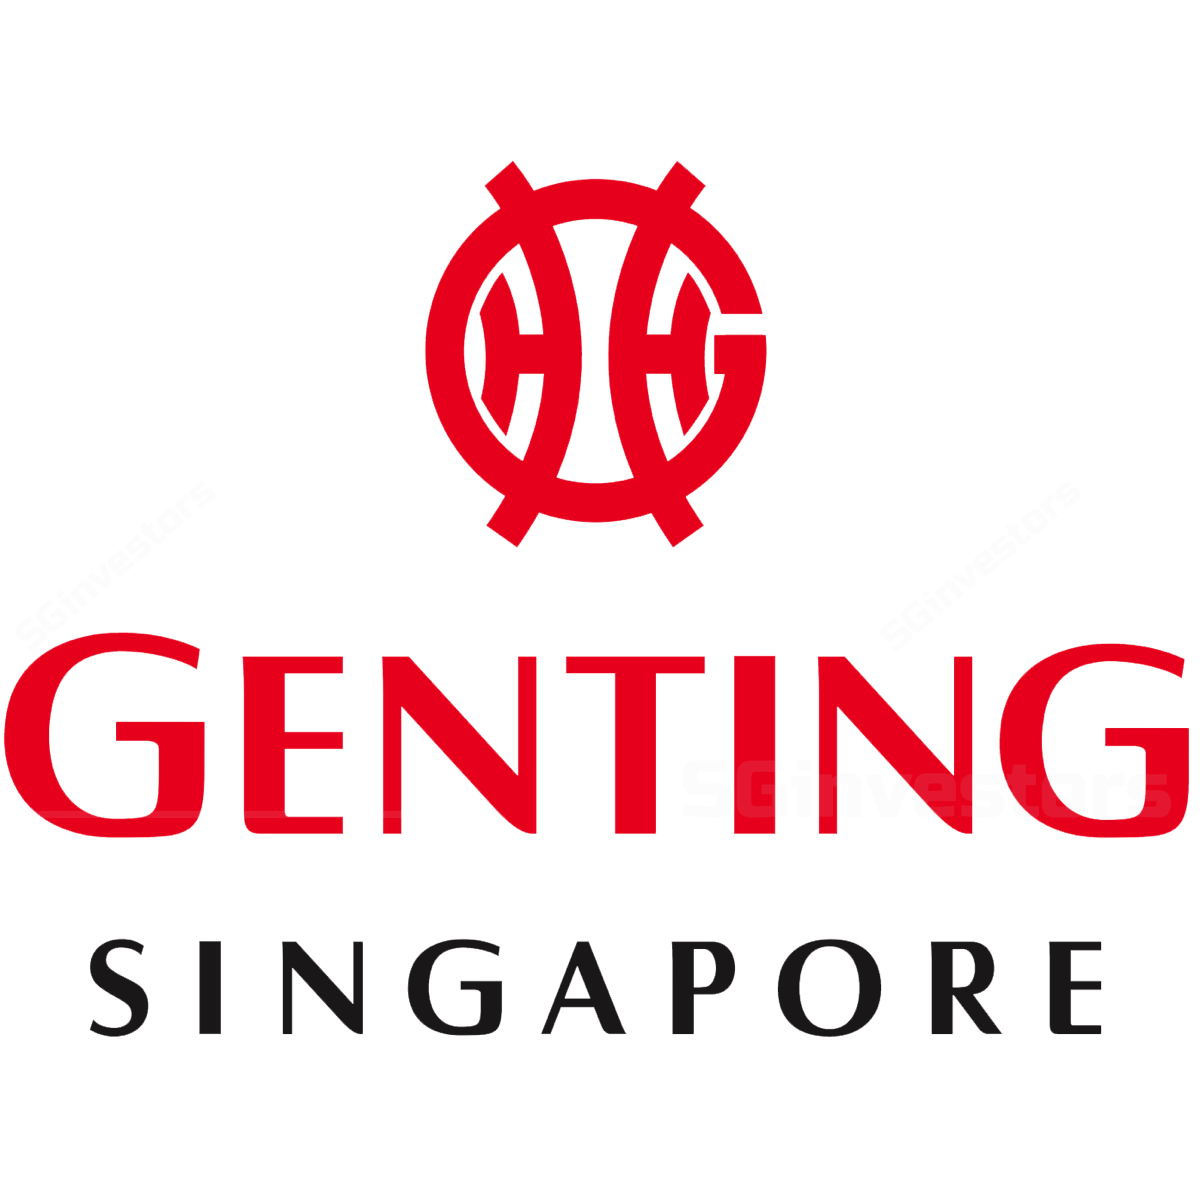 Genting Singapore - CIMB Research 2018-04-26: Marina Bay Sands 1Q18 Lower VIP Chip Could Be Boon For GENS